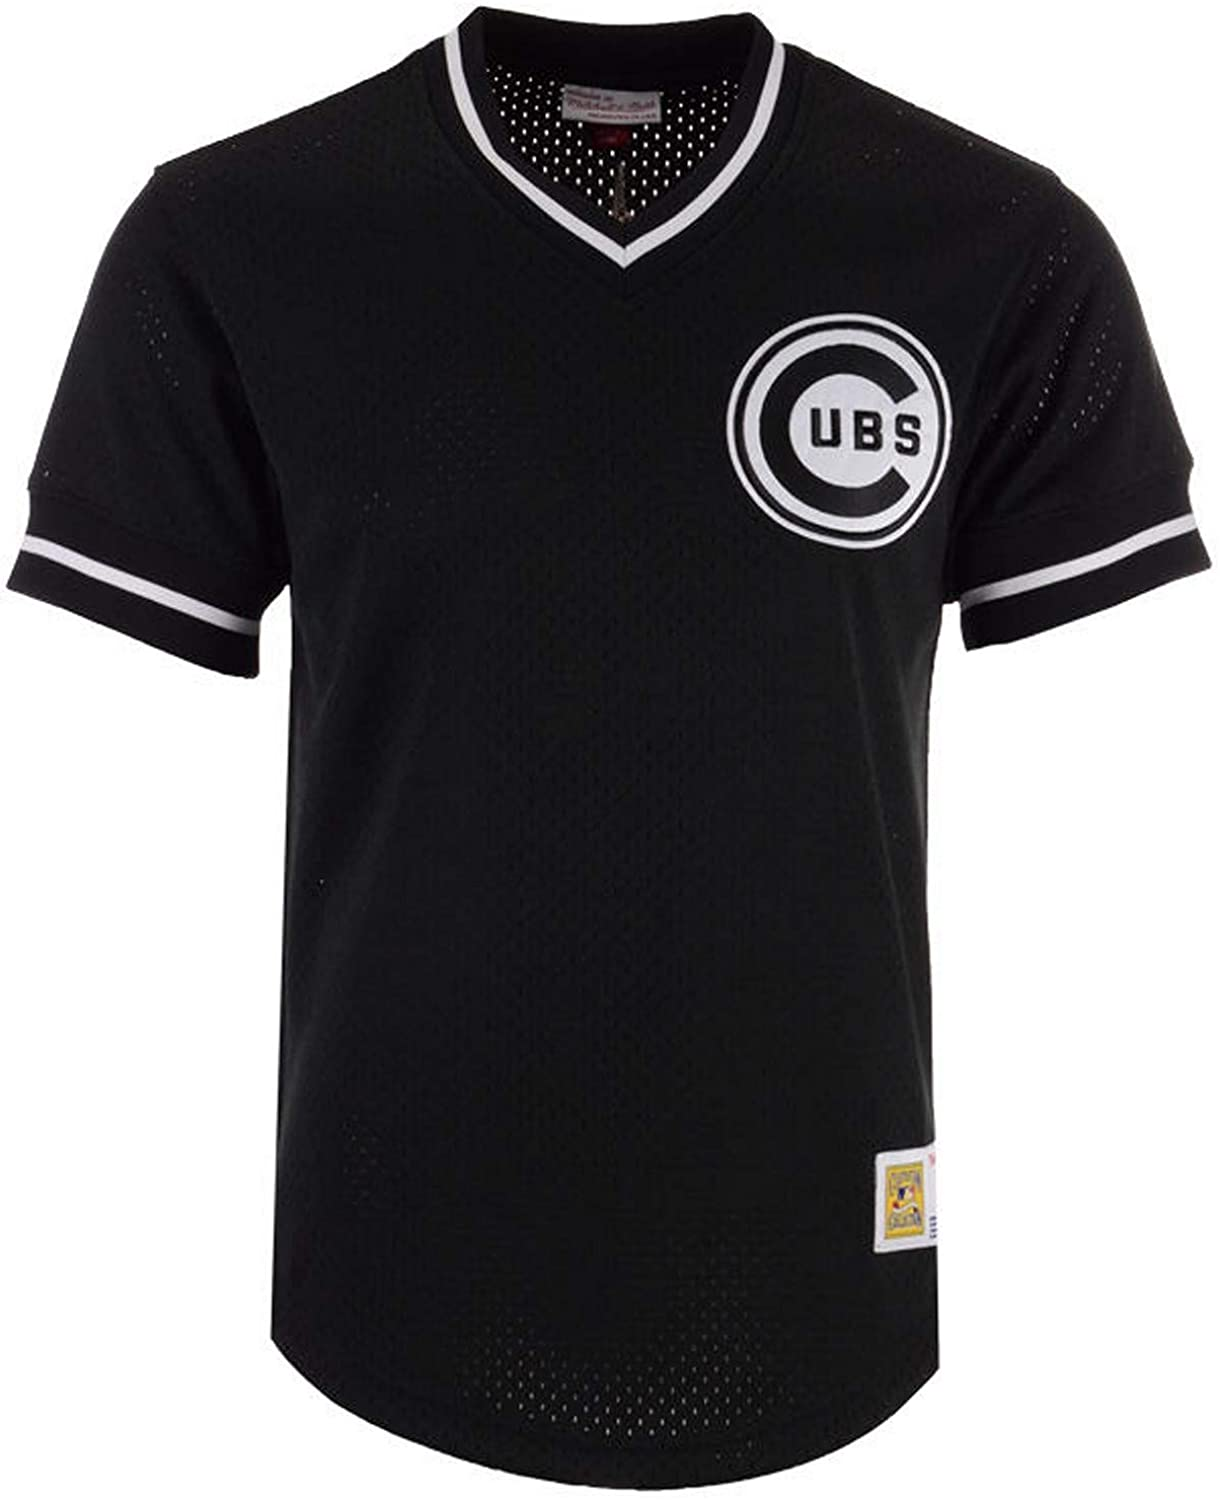 Mitchell & Ness LLC Chicago Cubs V-Neck Mesh Jersey Size 2X-Large 2XL - Black